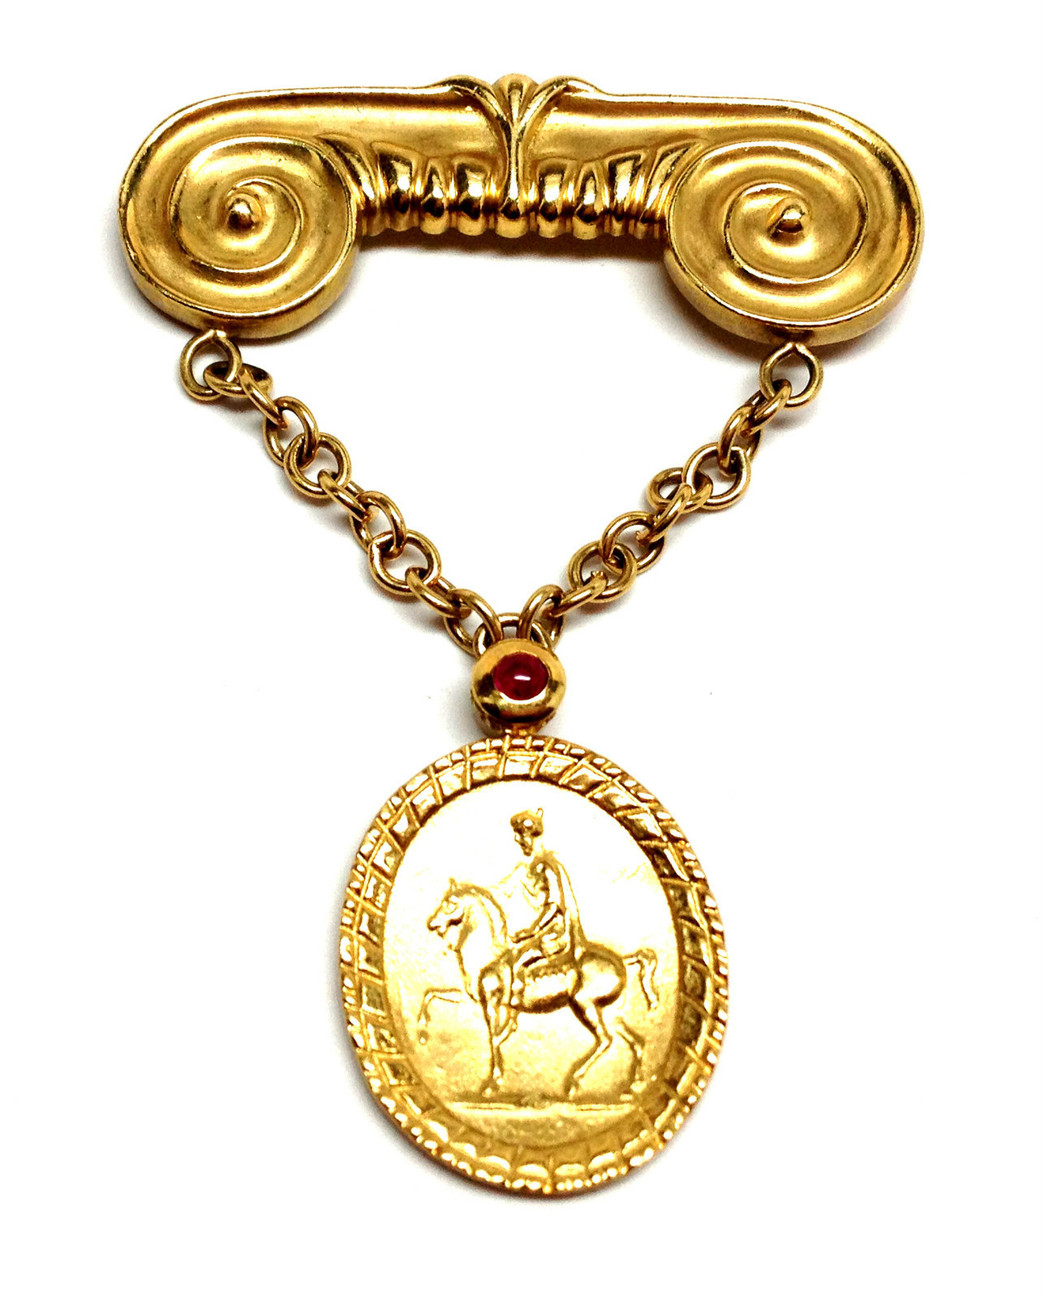 SEIDENGANG Solid 18K Yellow Gold with Ruby Cameo Horseman Drop Brooch Pin